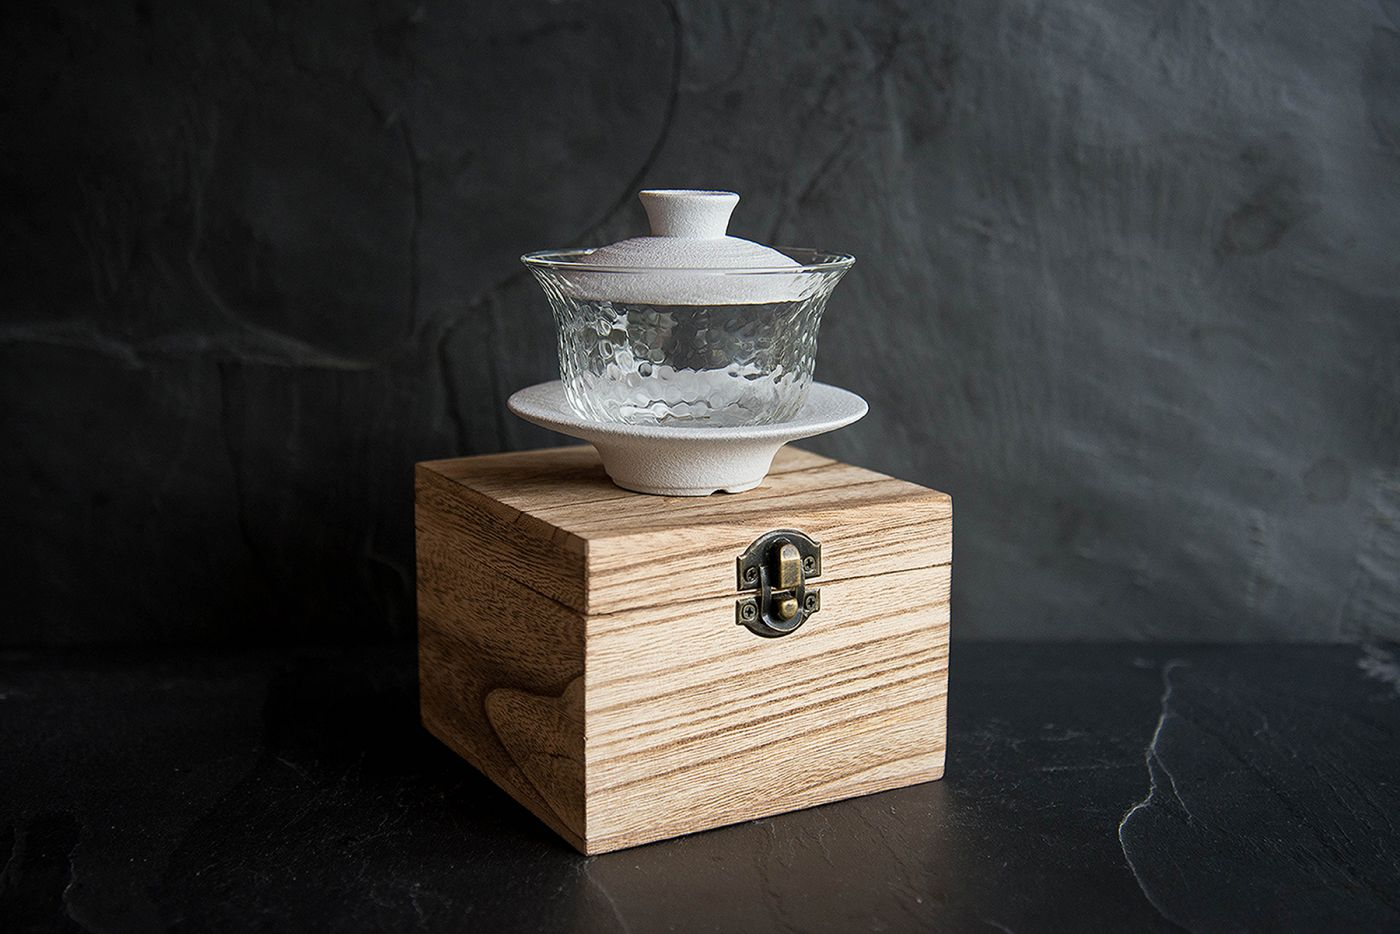 Ono White Porcelain and Glass Gaiwan